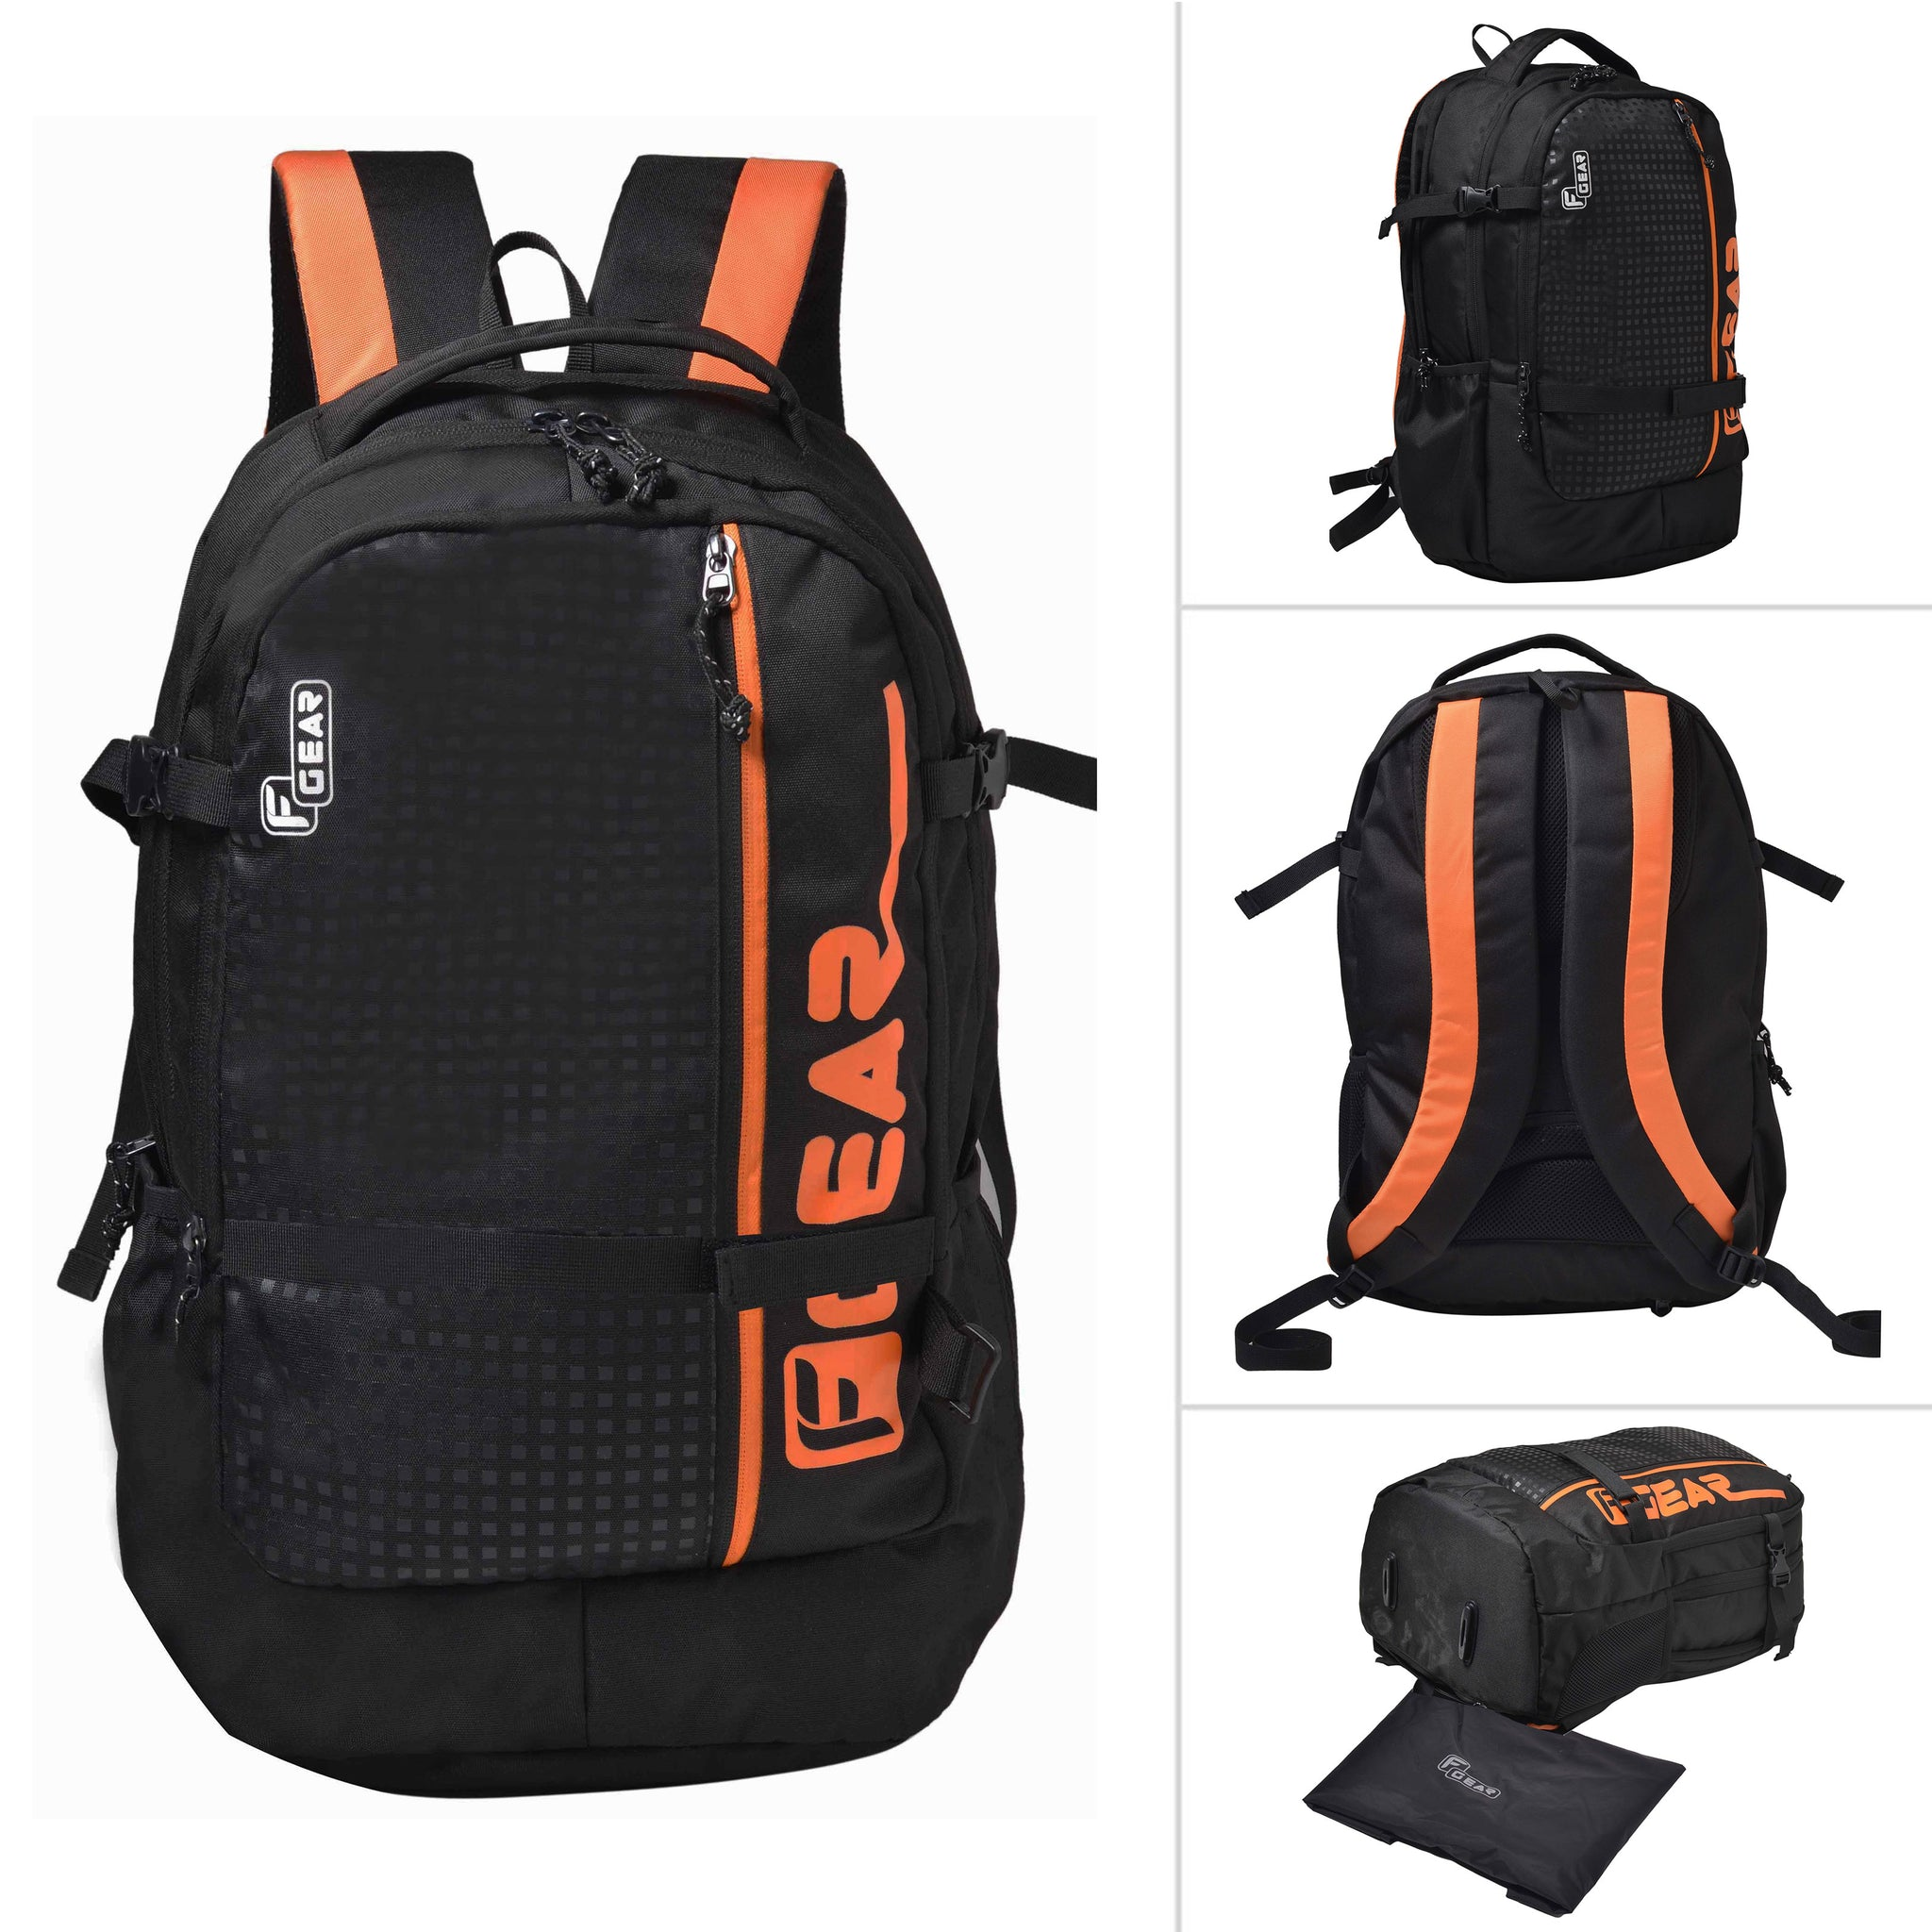 F Gear Boshida 31 Liters Orange Trekking Laptop Backpack With Rain Cover (2623)